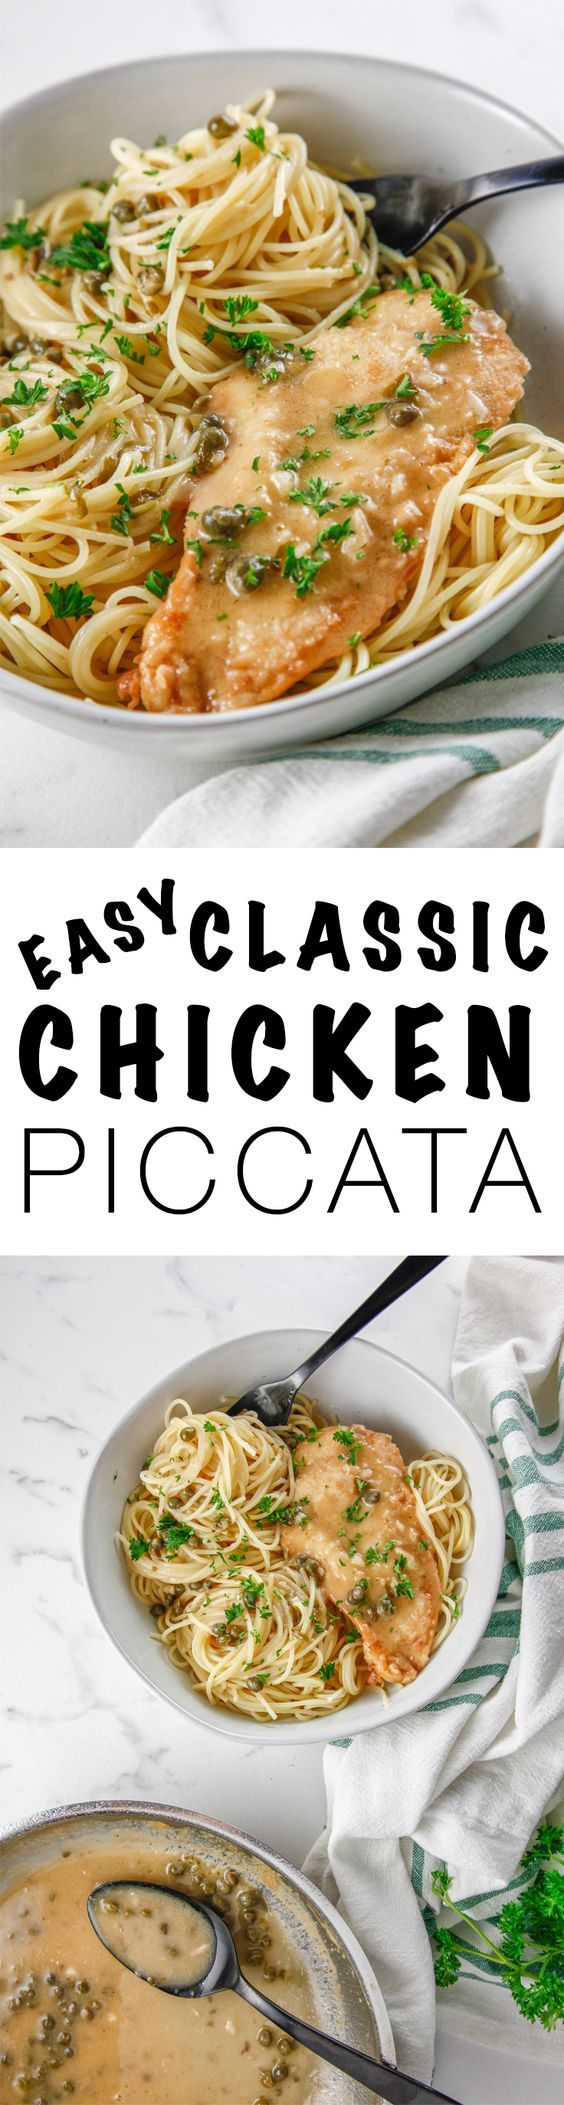 Make a dinner the whole family will love with this recipe for Easy Classic Chicken Piccata. This classic meal is a staple and remains a classic for a reason! via @Thebrooklyncook